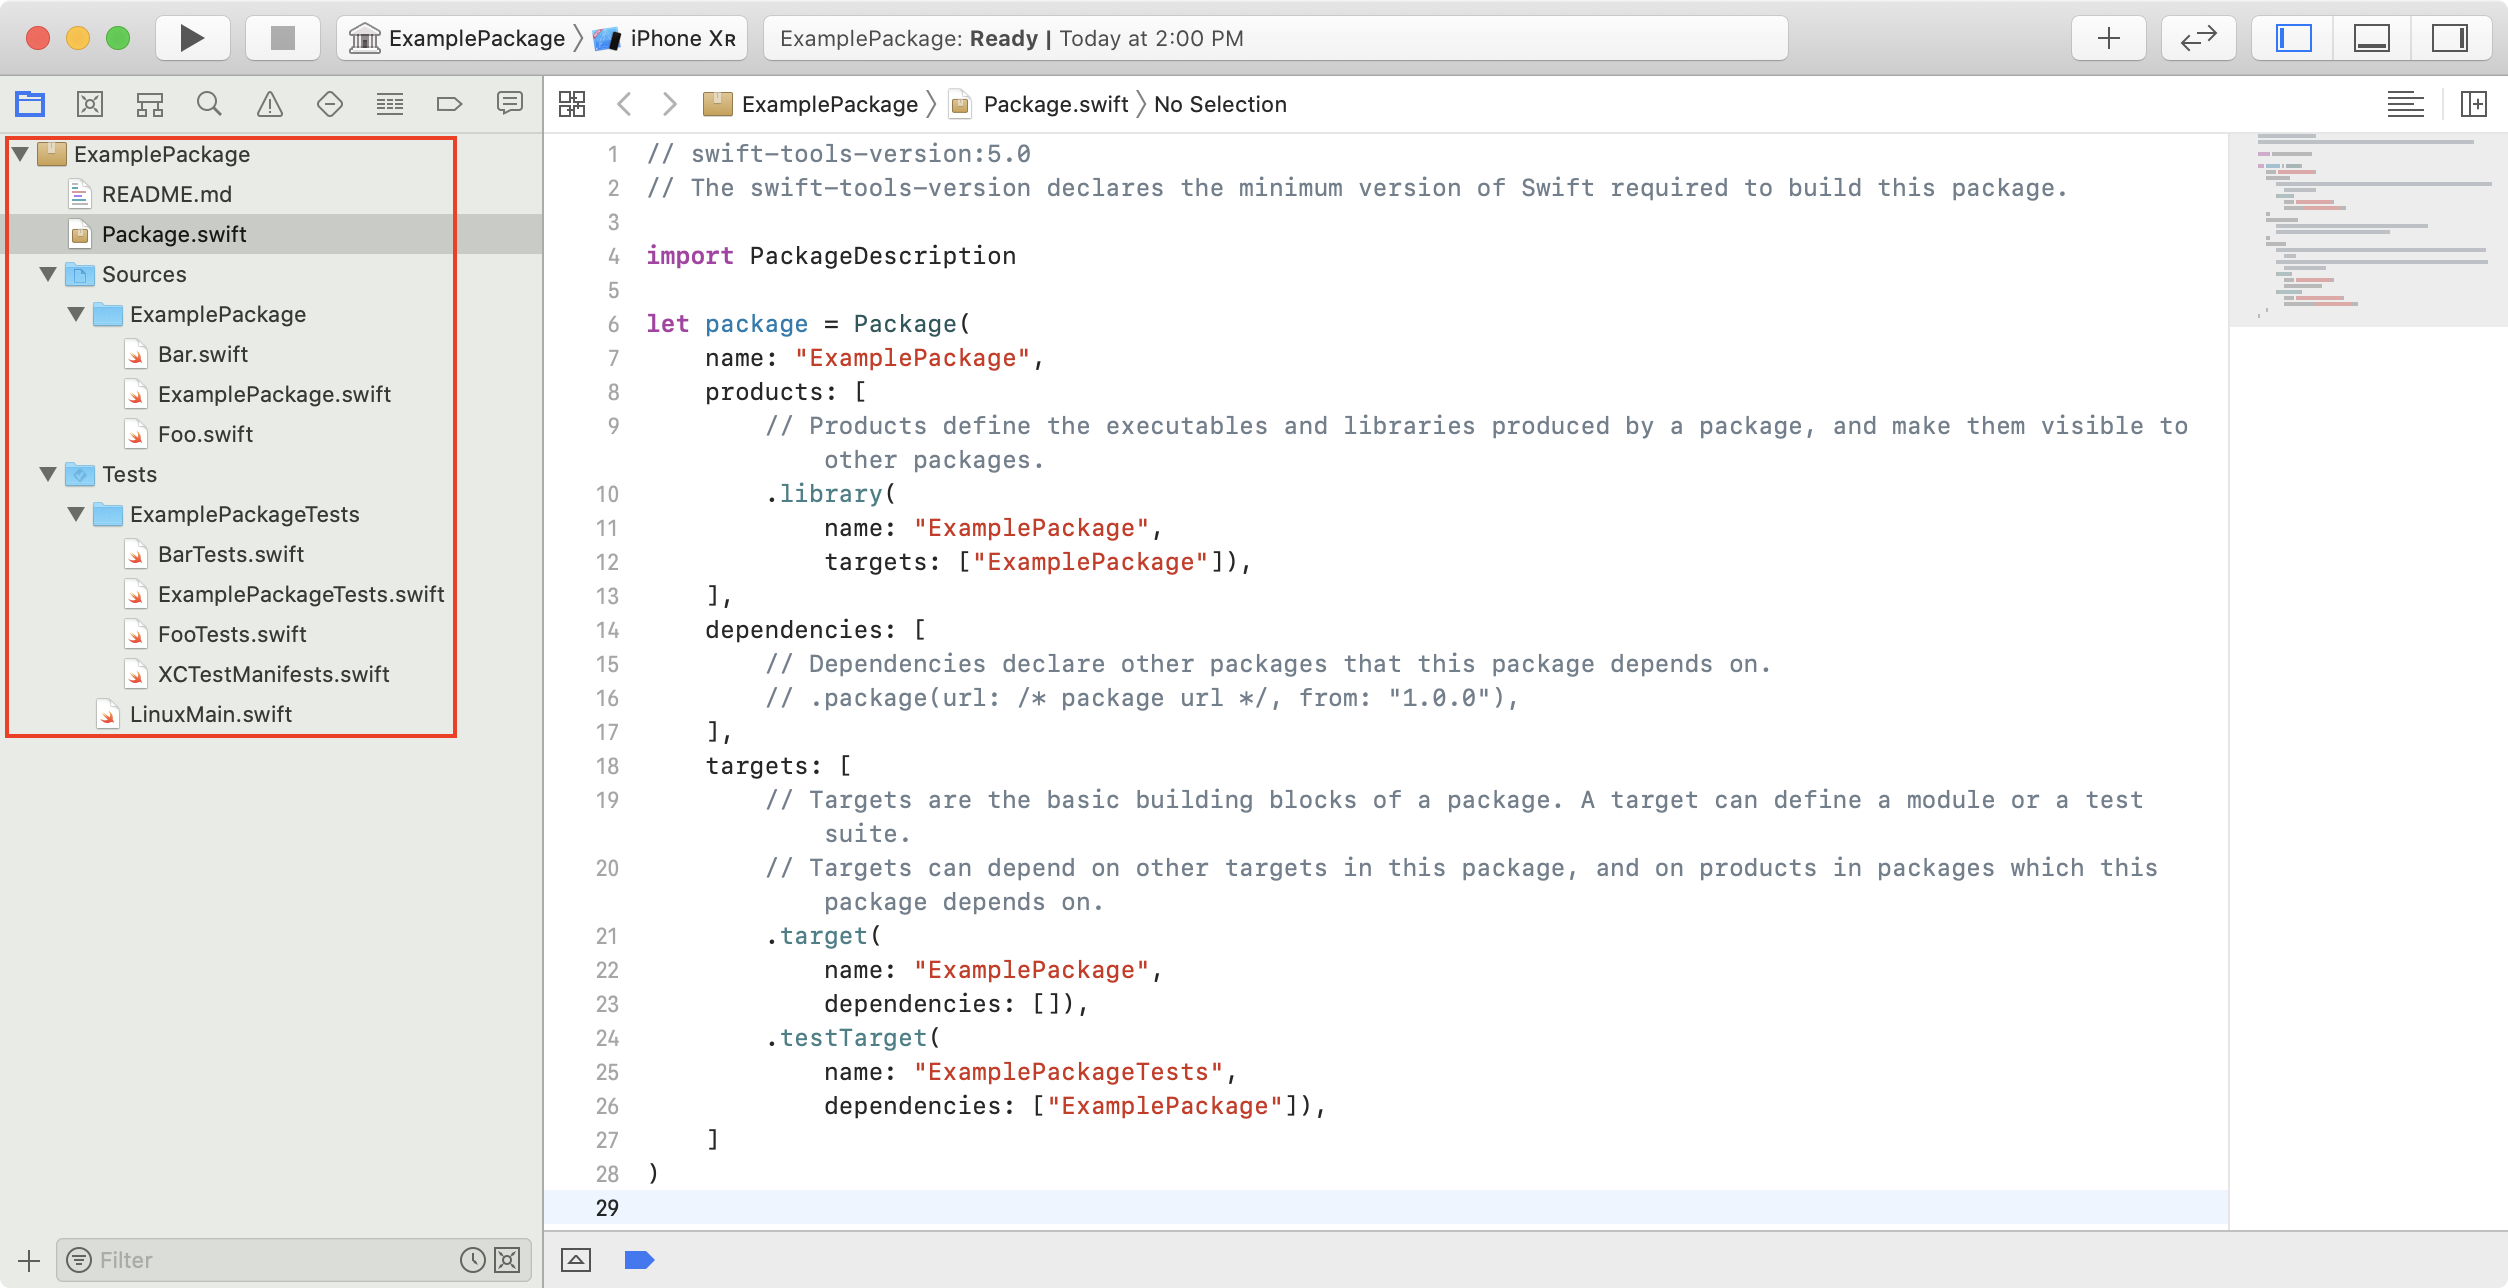 Screenshot showing a standalone Swift package with two added source files and two unit test files.